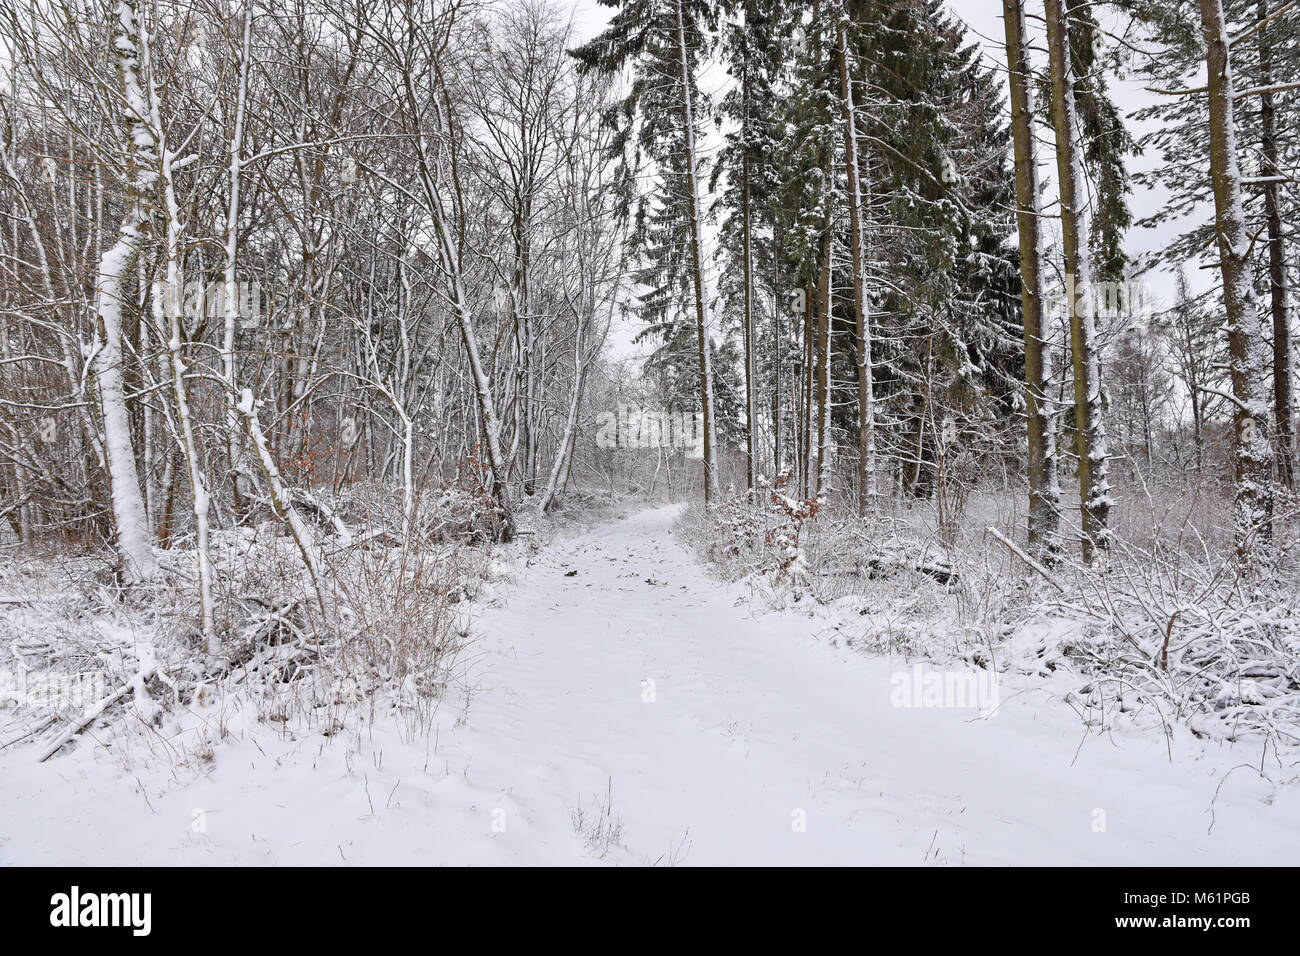 Snowy forest at the Swabian Alb. Baden-Wuerttemberg, Germany - Stock Image